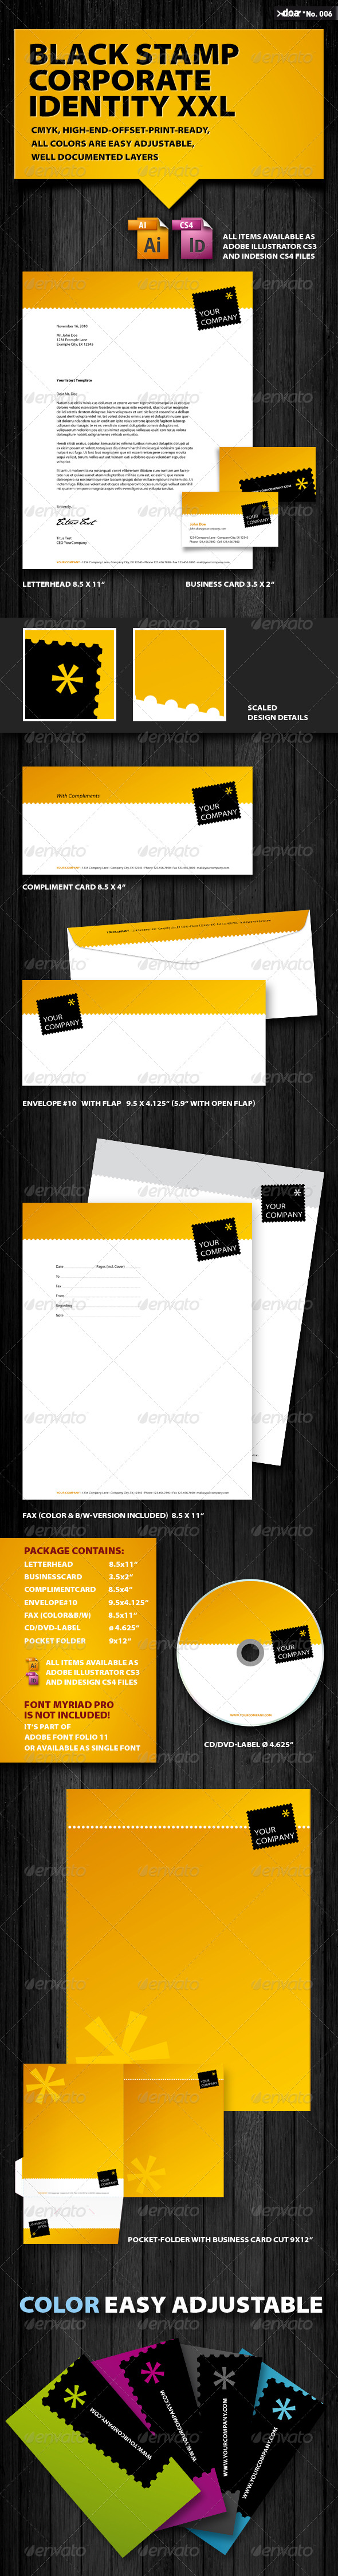 Black Stamp Corporate Identity XXL - Stationery Print Templates